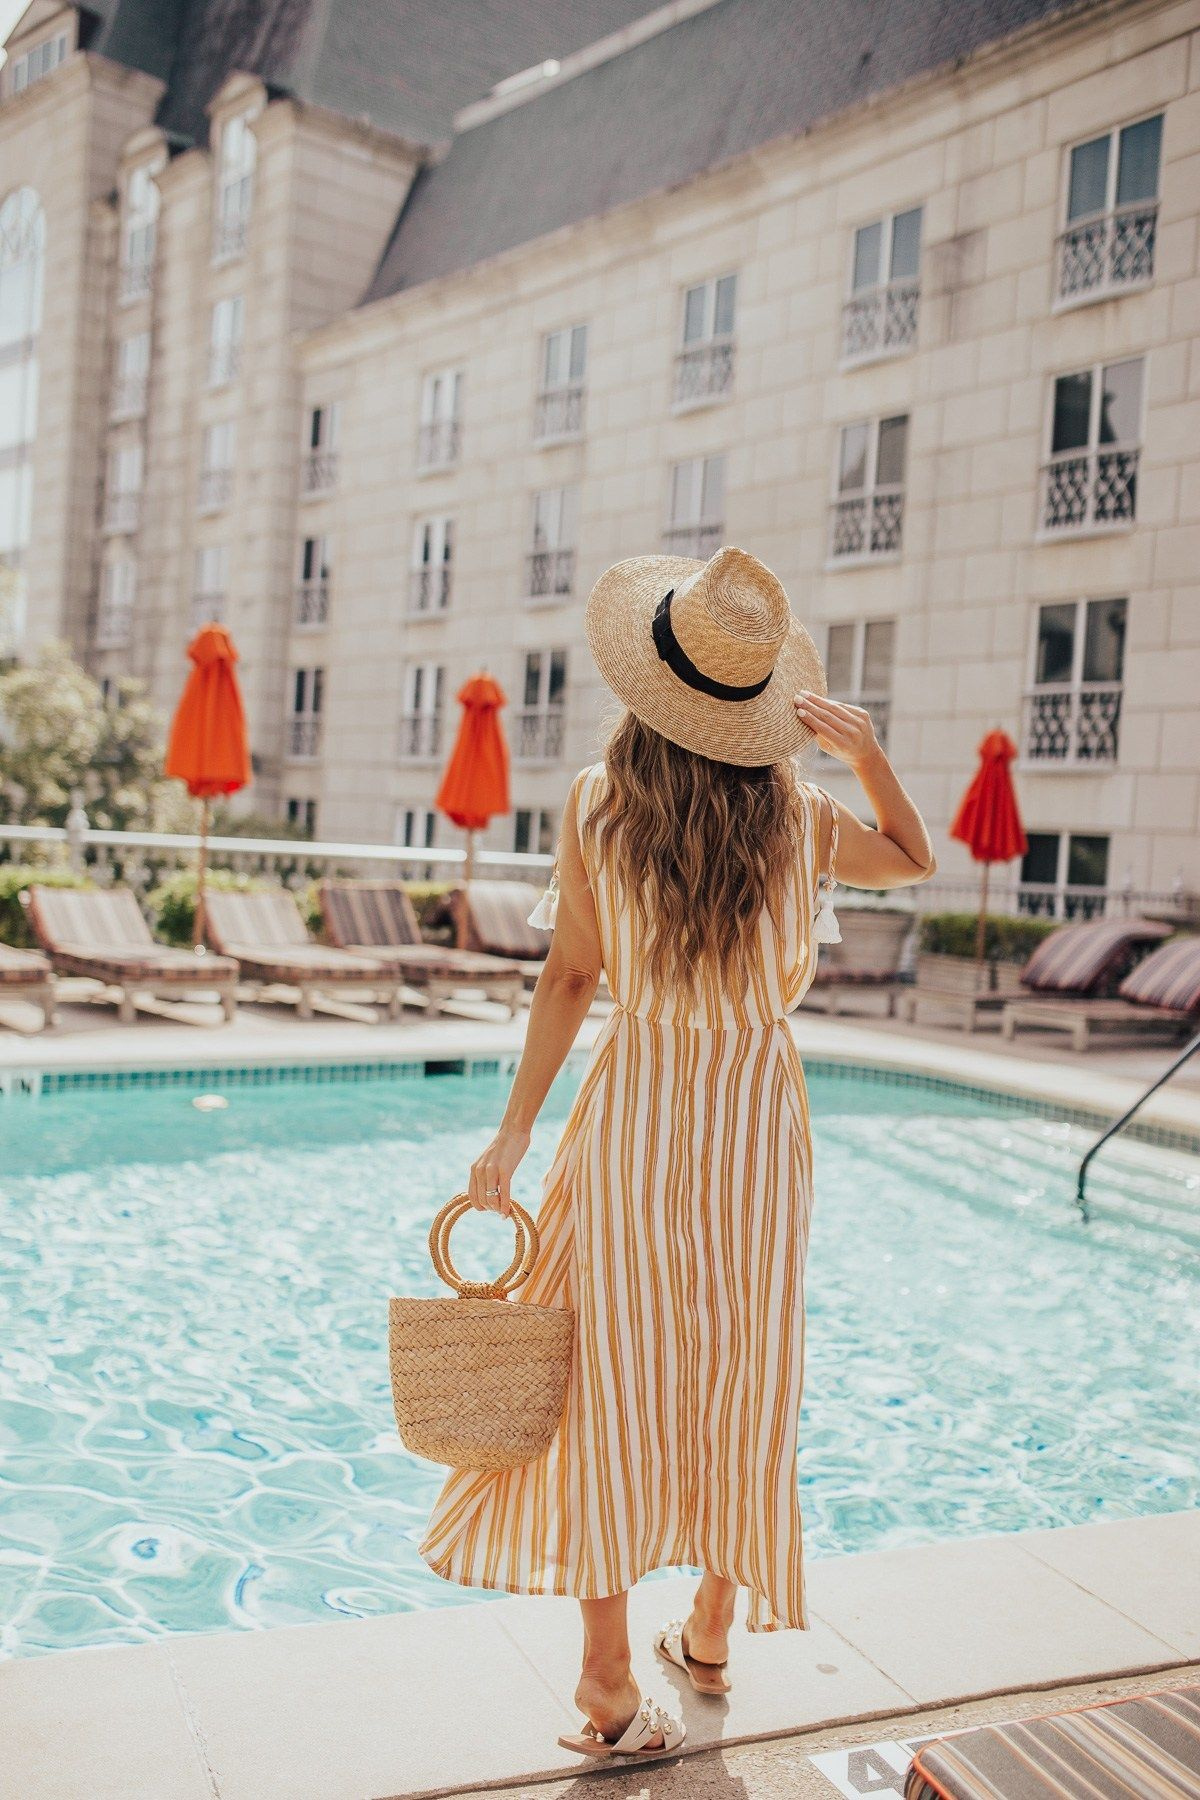 Pin On Crescent Court: Staycation, Fashion, Cute Boutiques